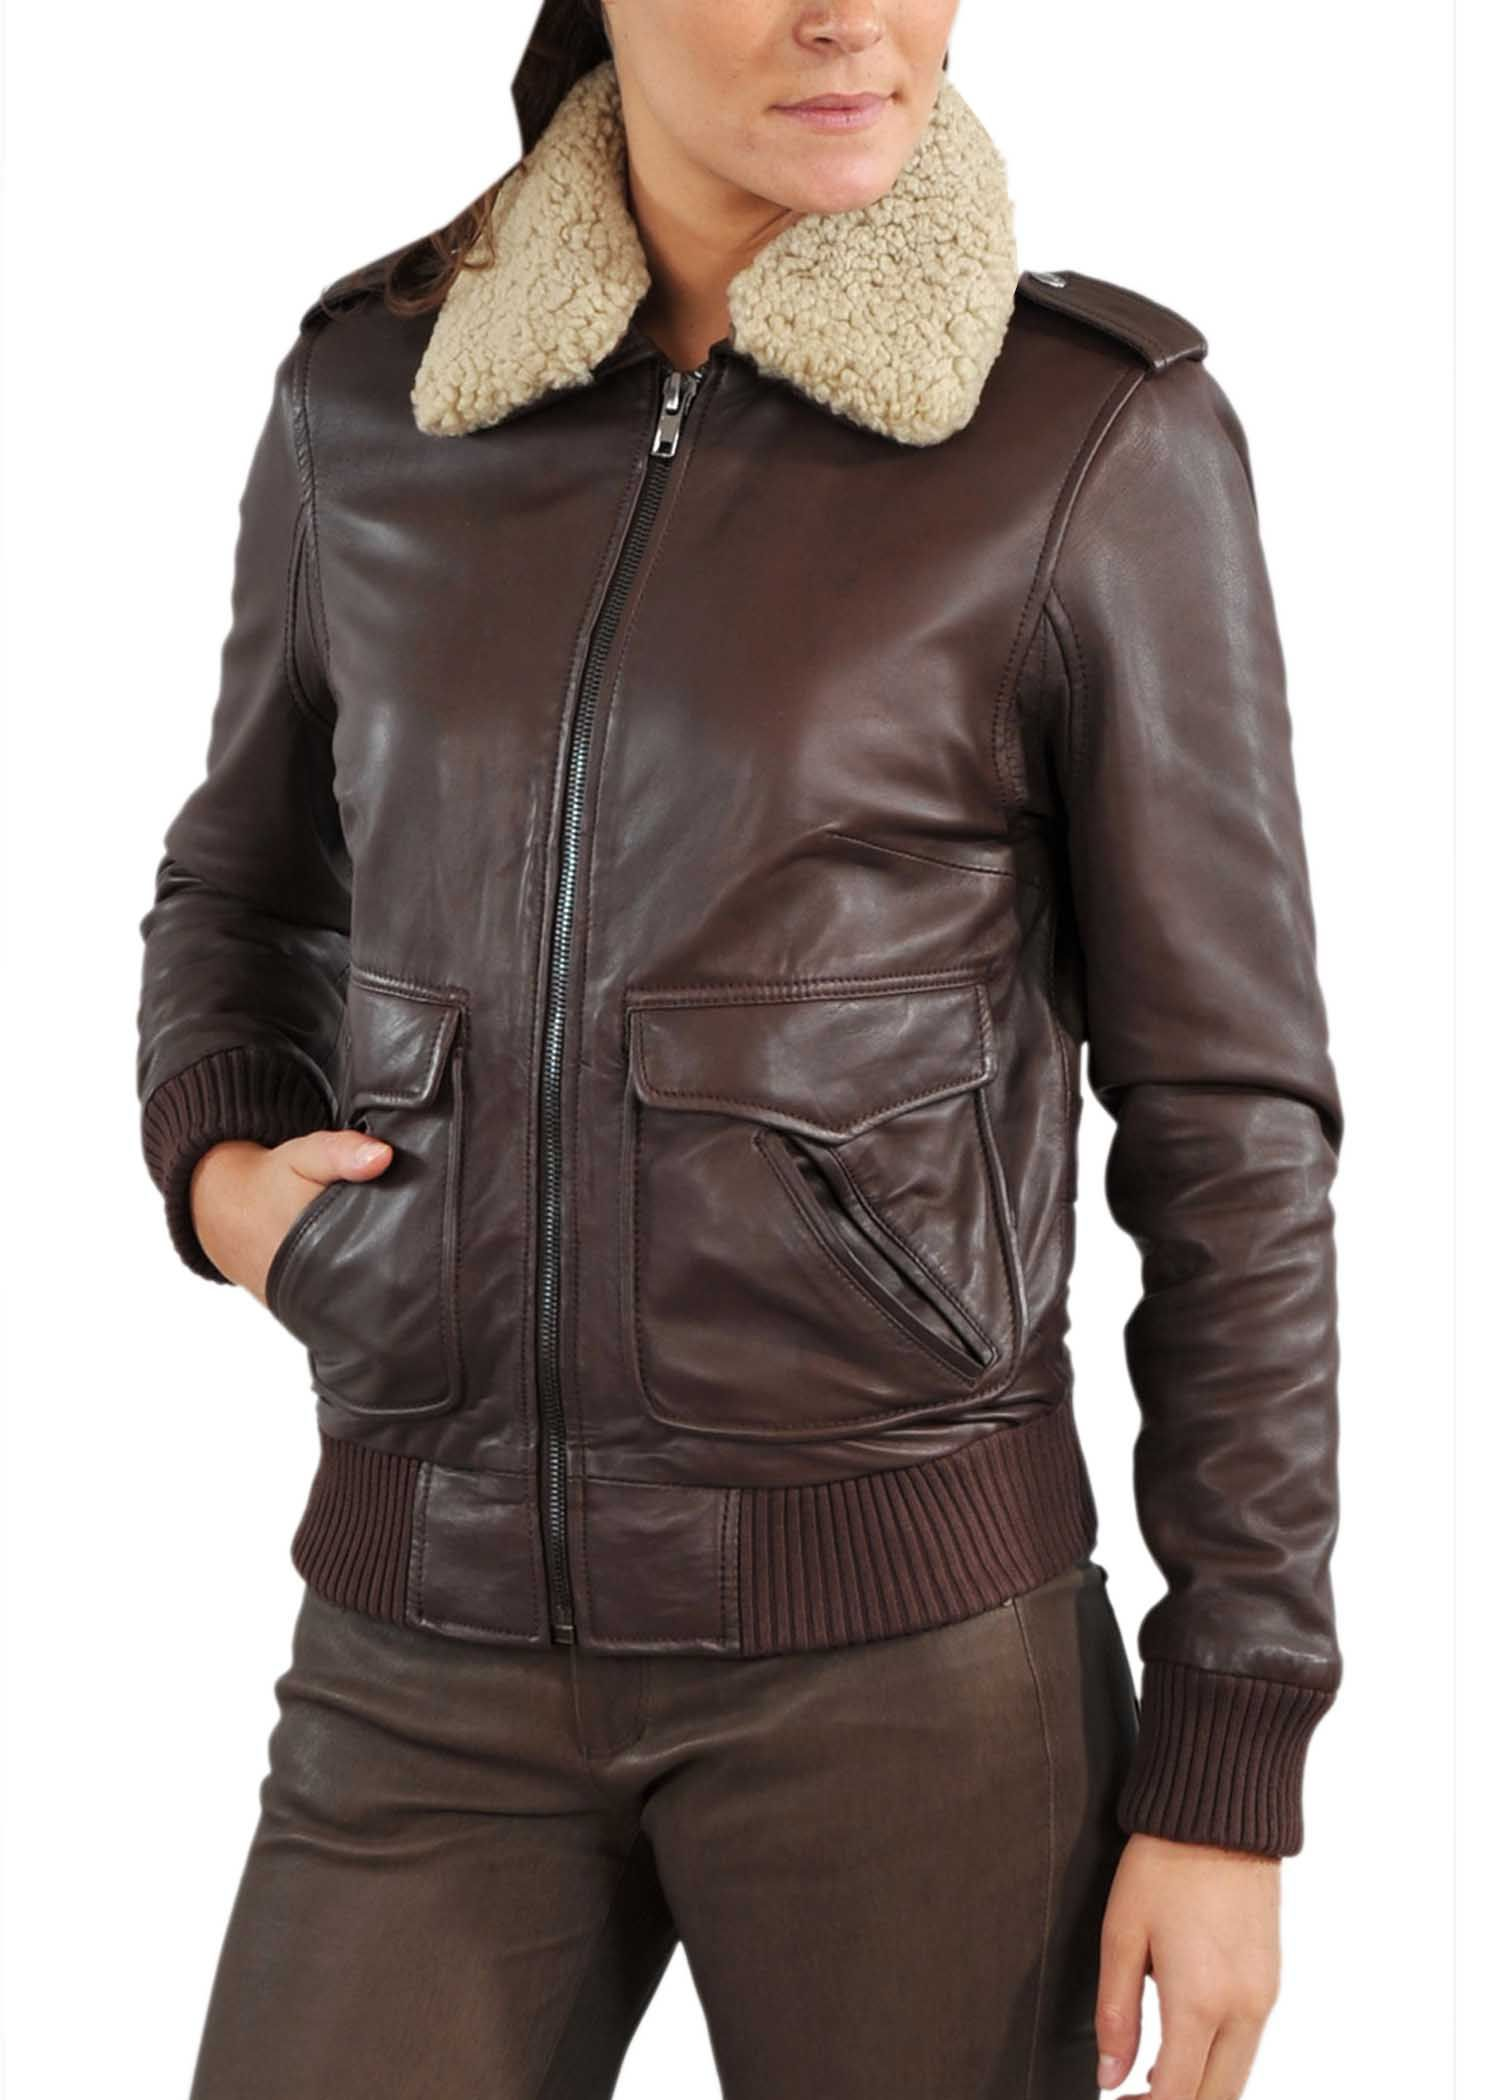 Leather Bomber Jackets For Women - Jacket To | leather_jackets ...